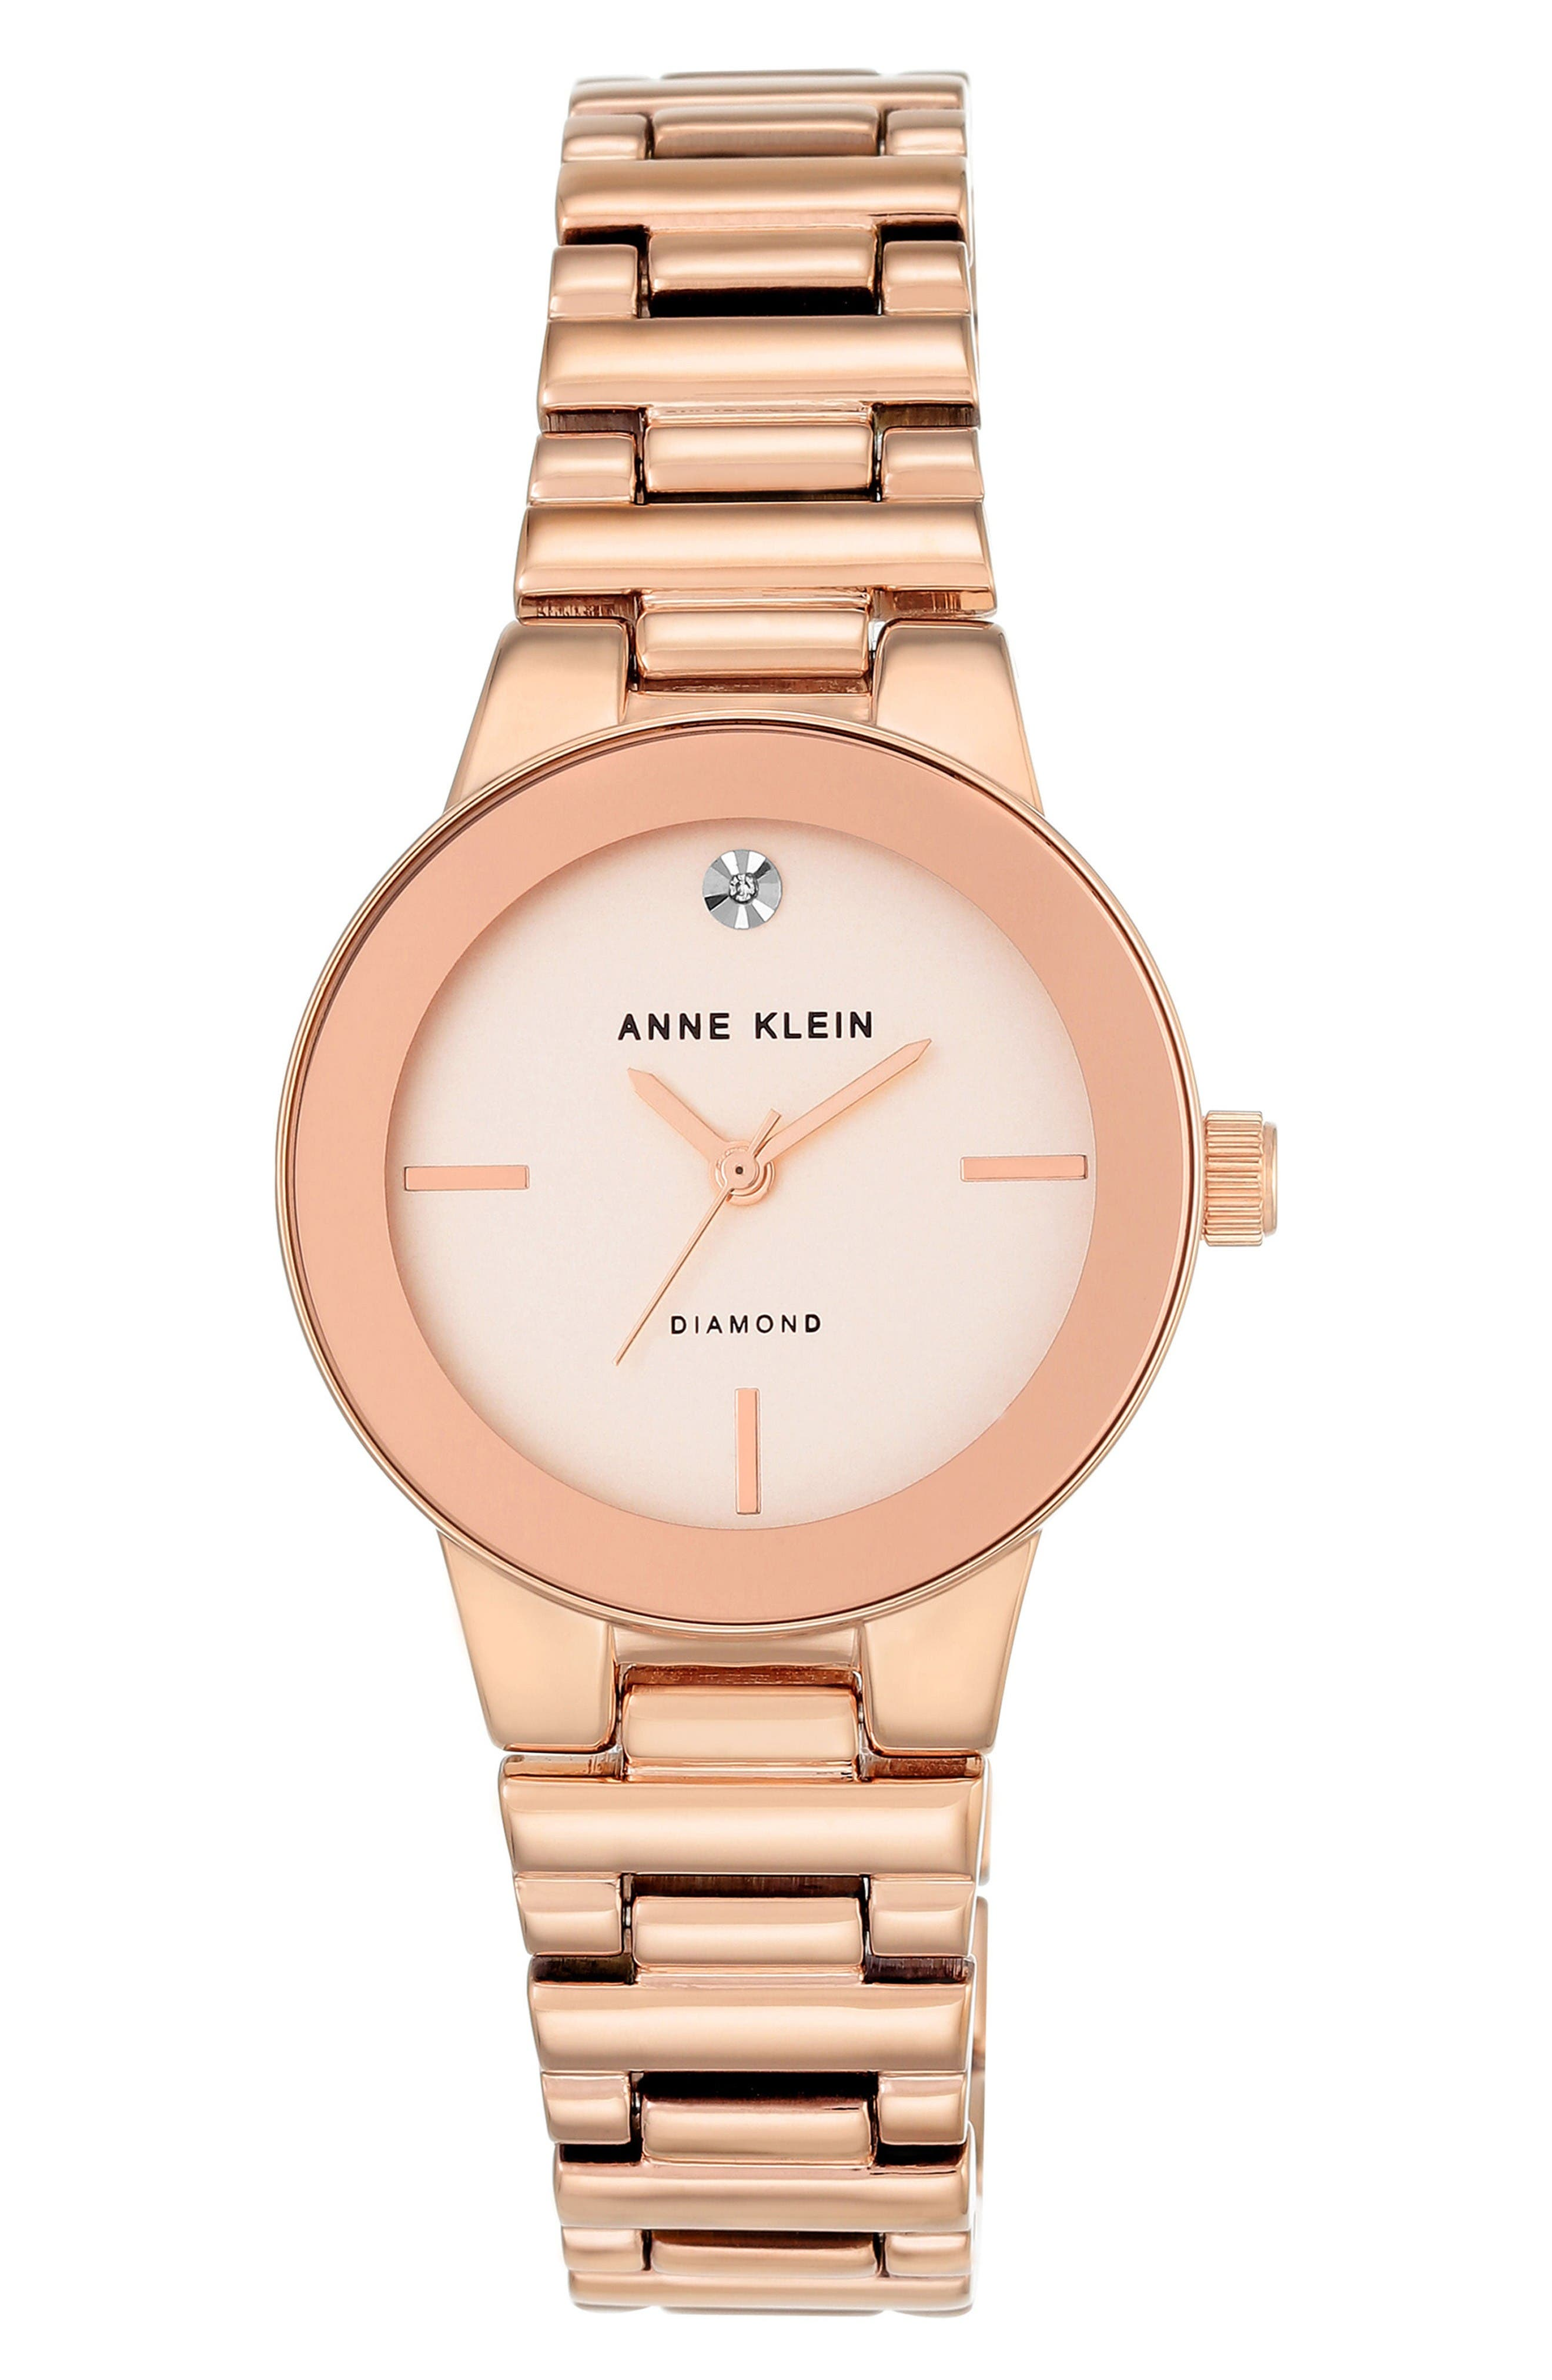 ANNE KLEIN Diamond Dial Bracelet Watch, 30mm